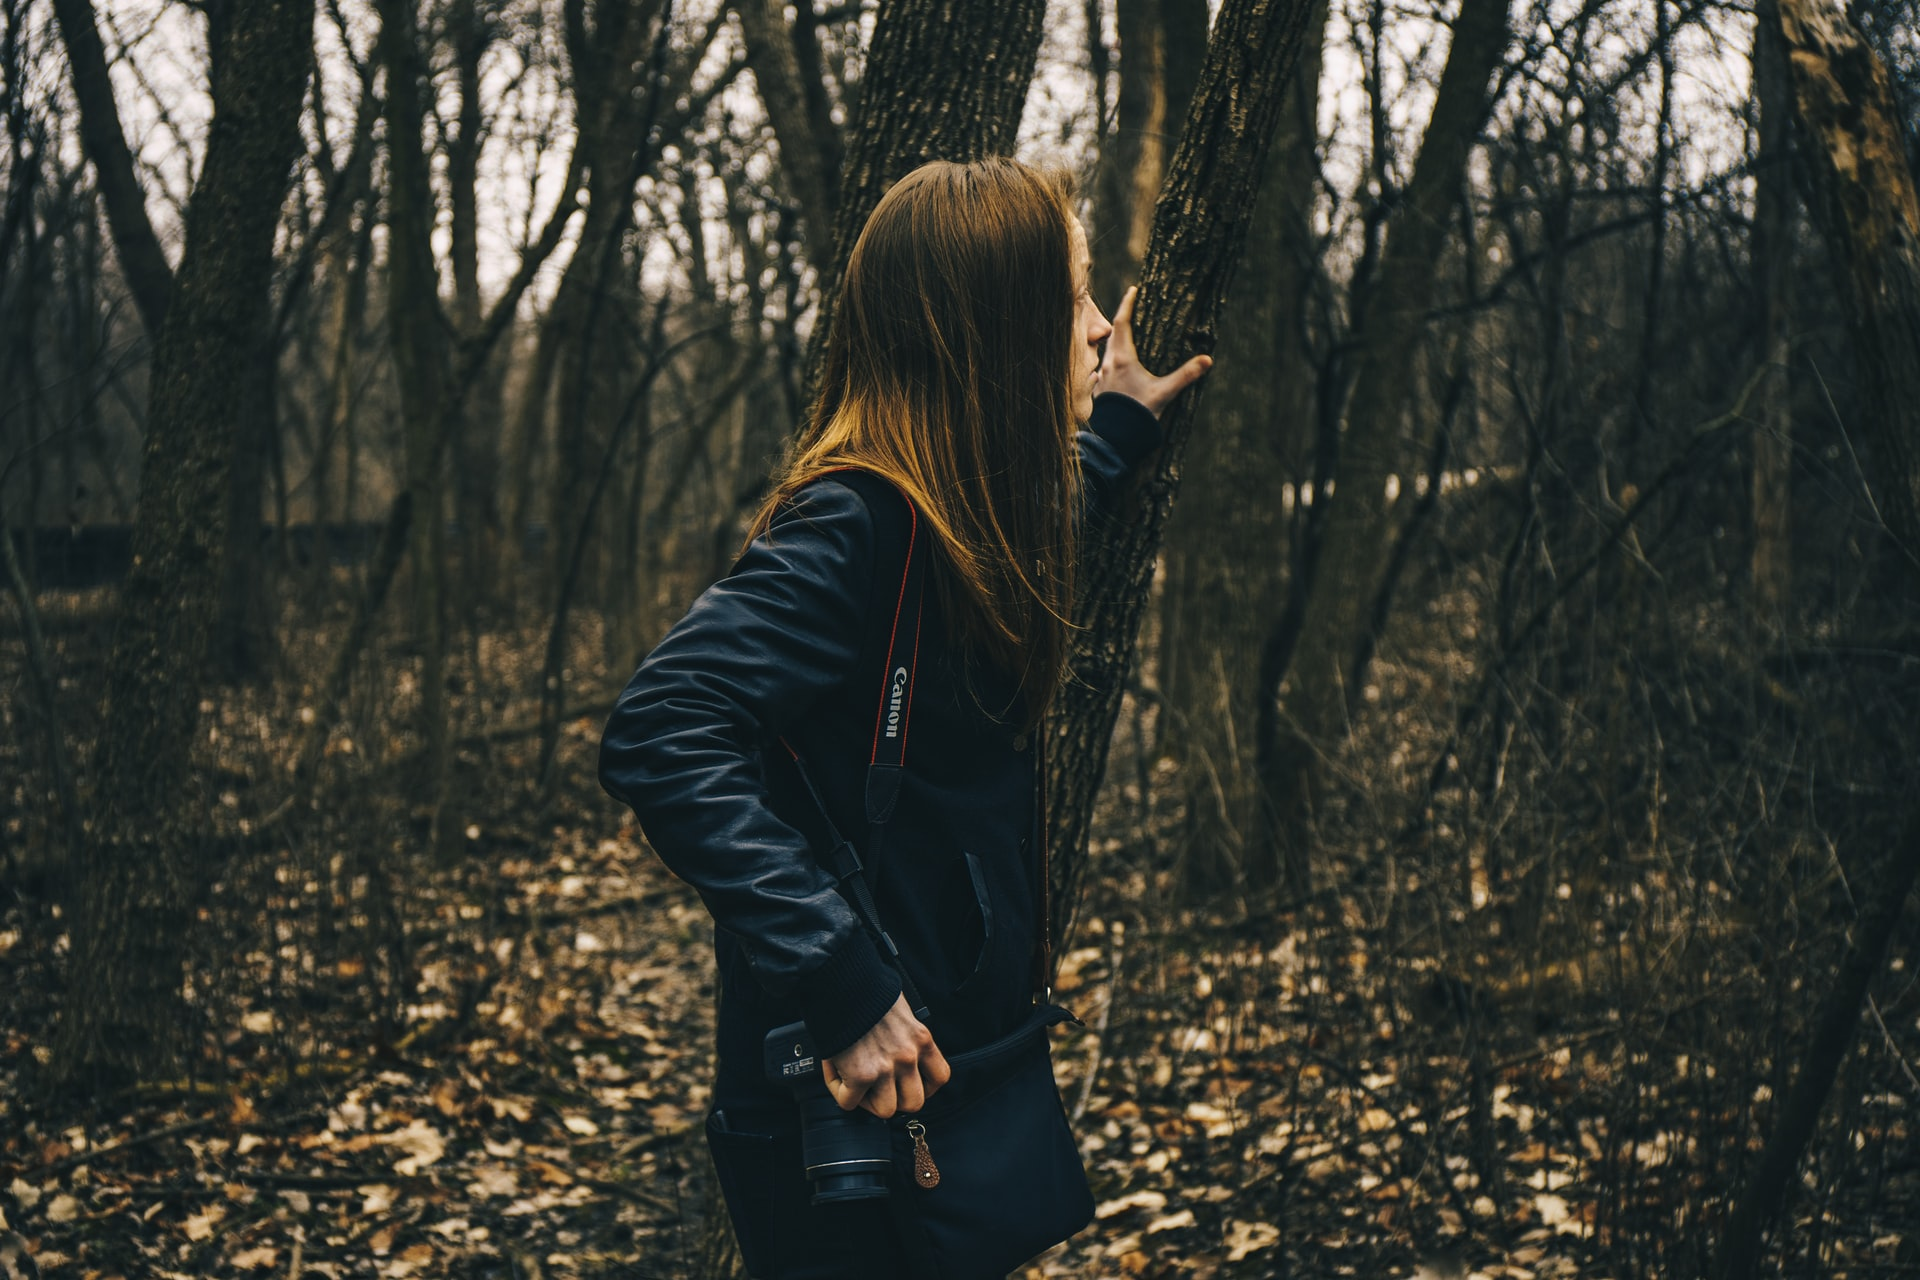 example of photographic storytelling; person wandering through woods, looking apprehensive